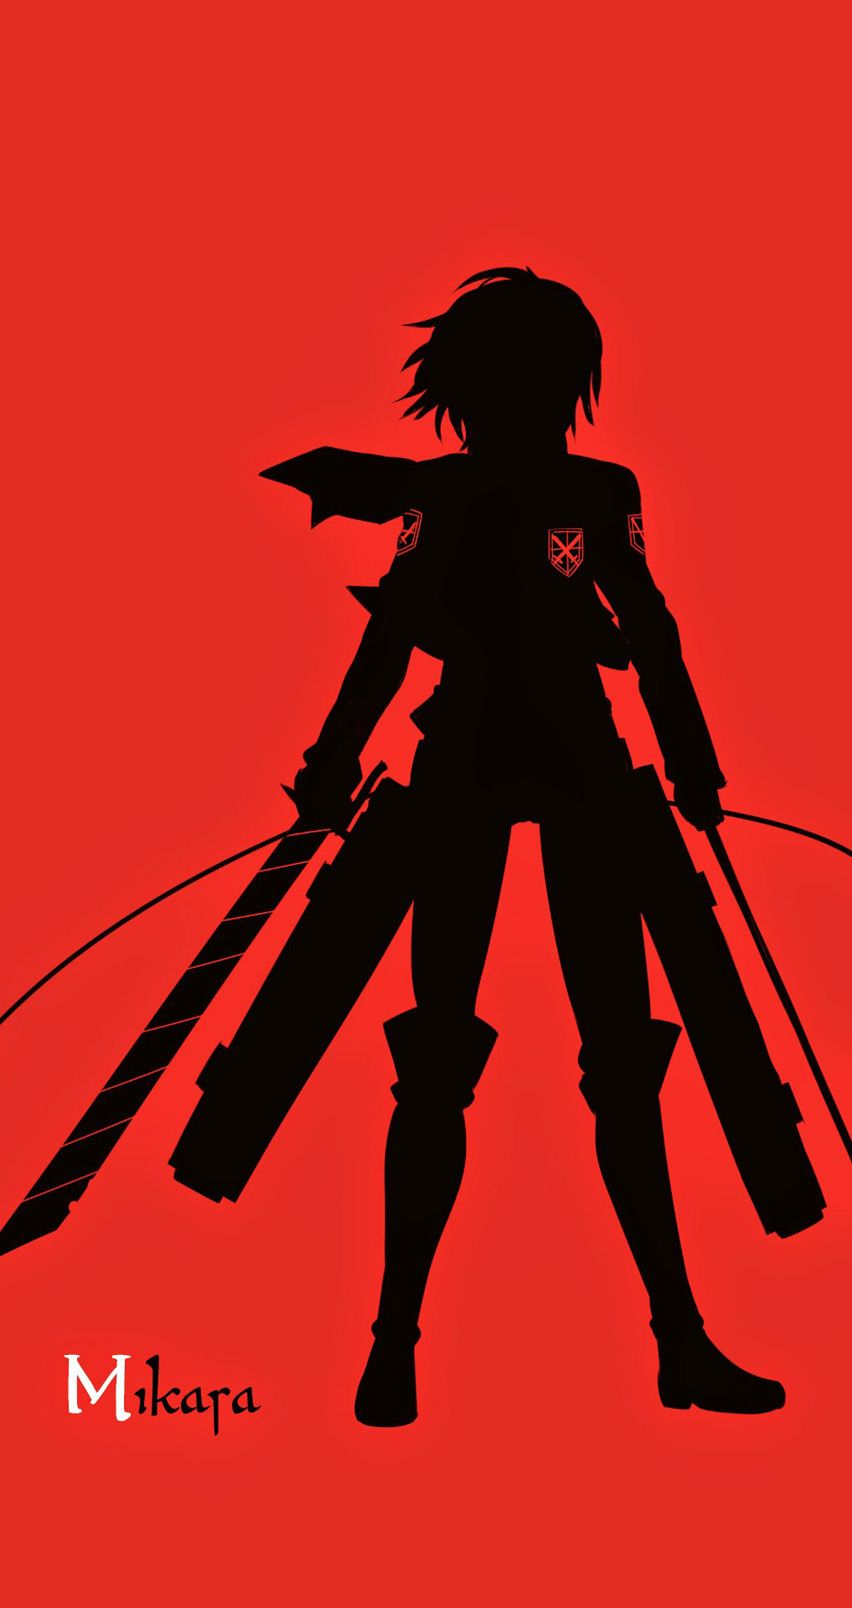 Tap And Get The Free App Anime Cartoons Minimalistic Red And Black Mikara Cool Fantasy Hd Iphone 6 Wall Anime Hd Girl Iphone Wallpaper Hd Wallpaper Iphone